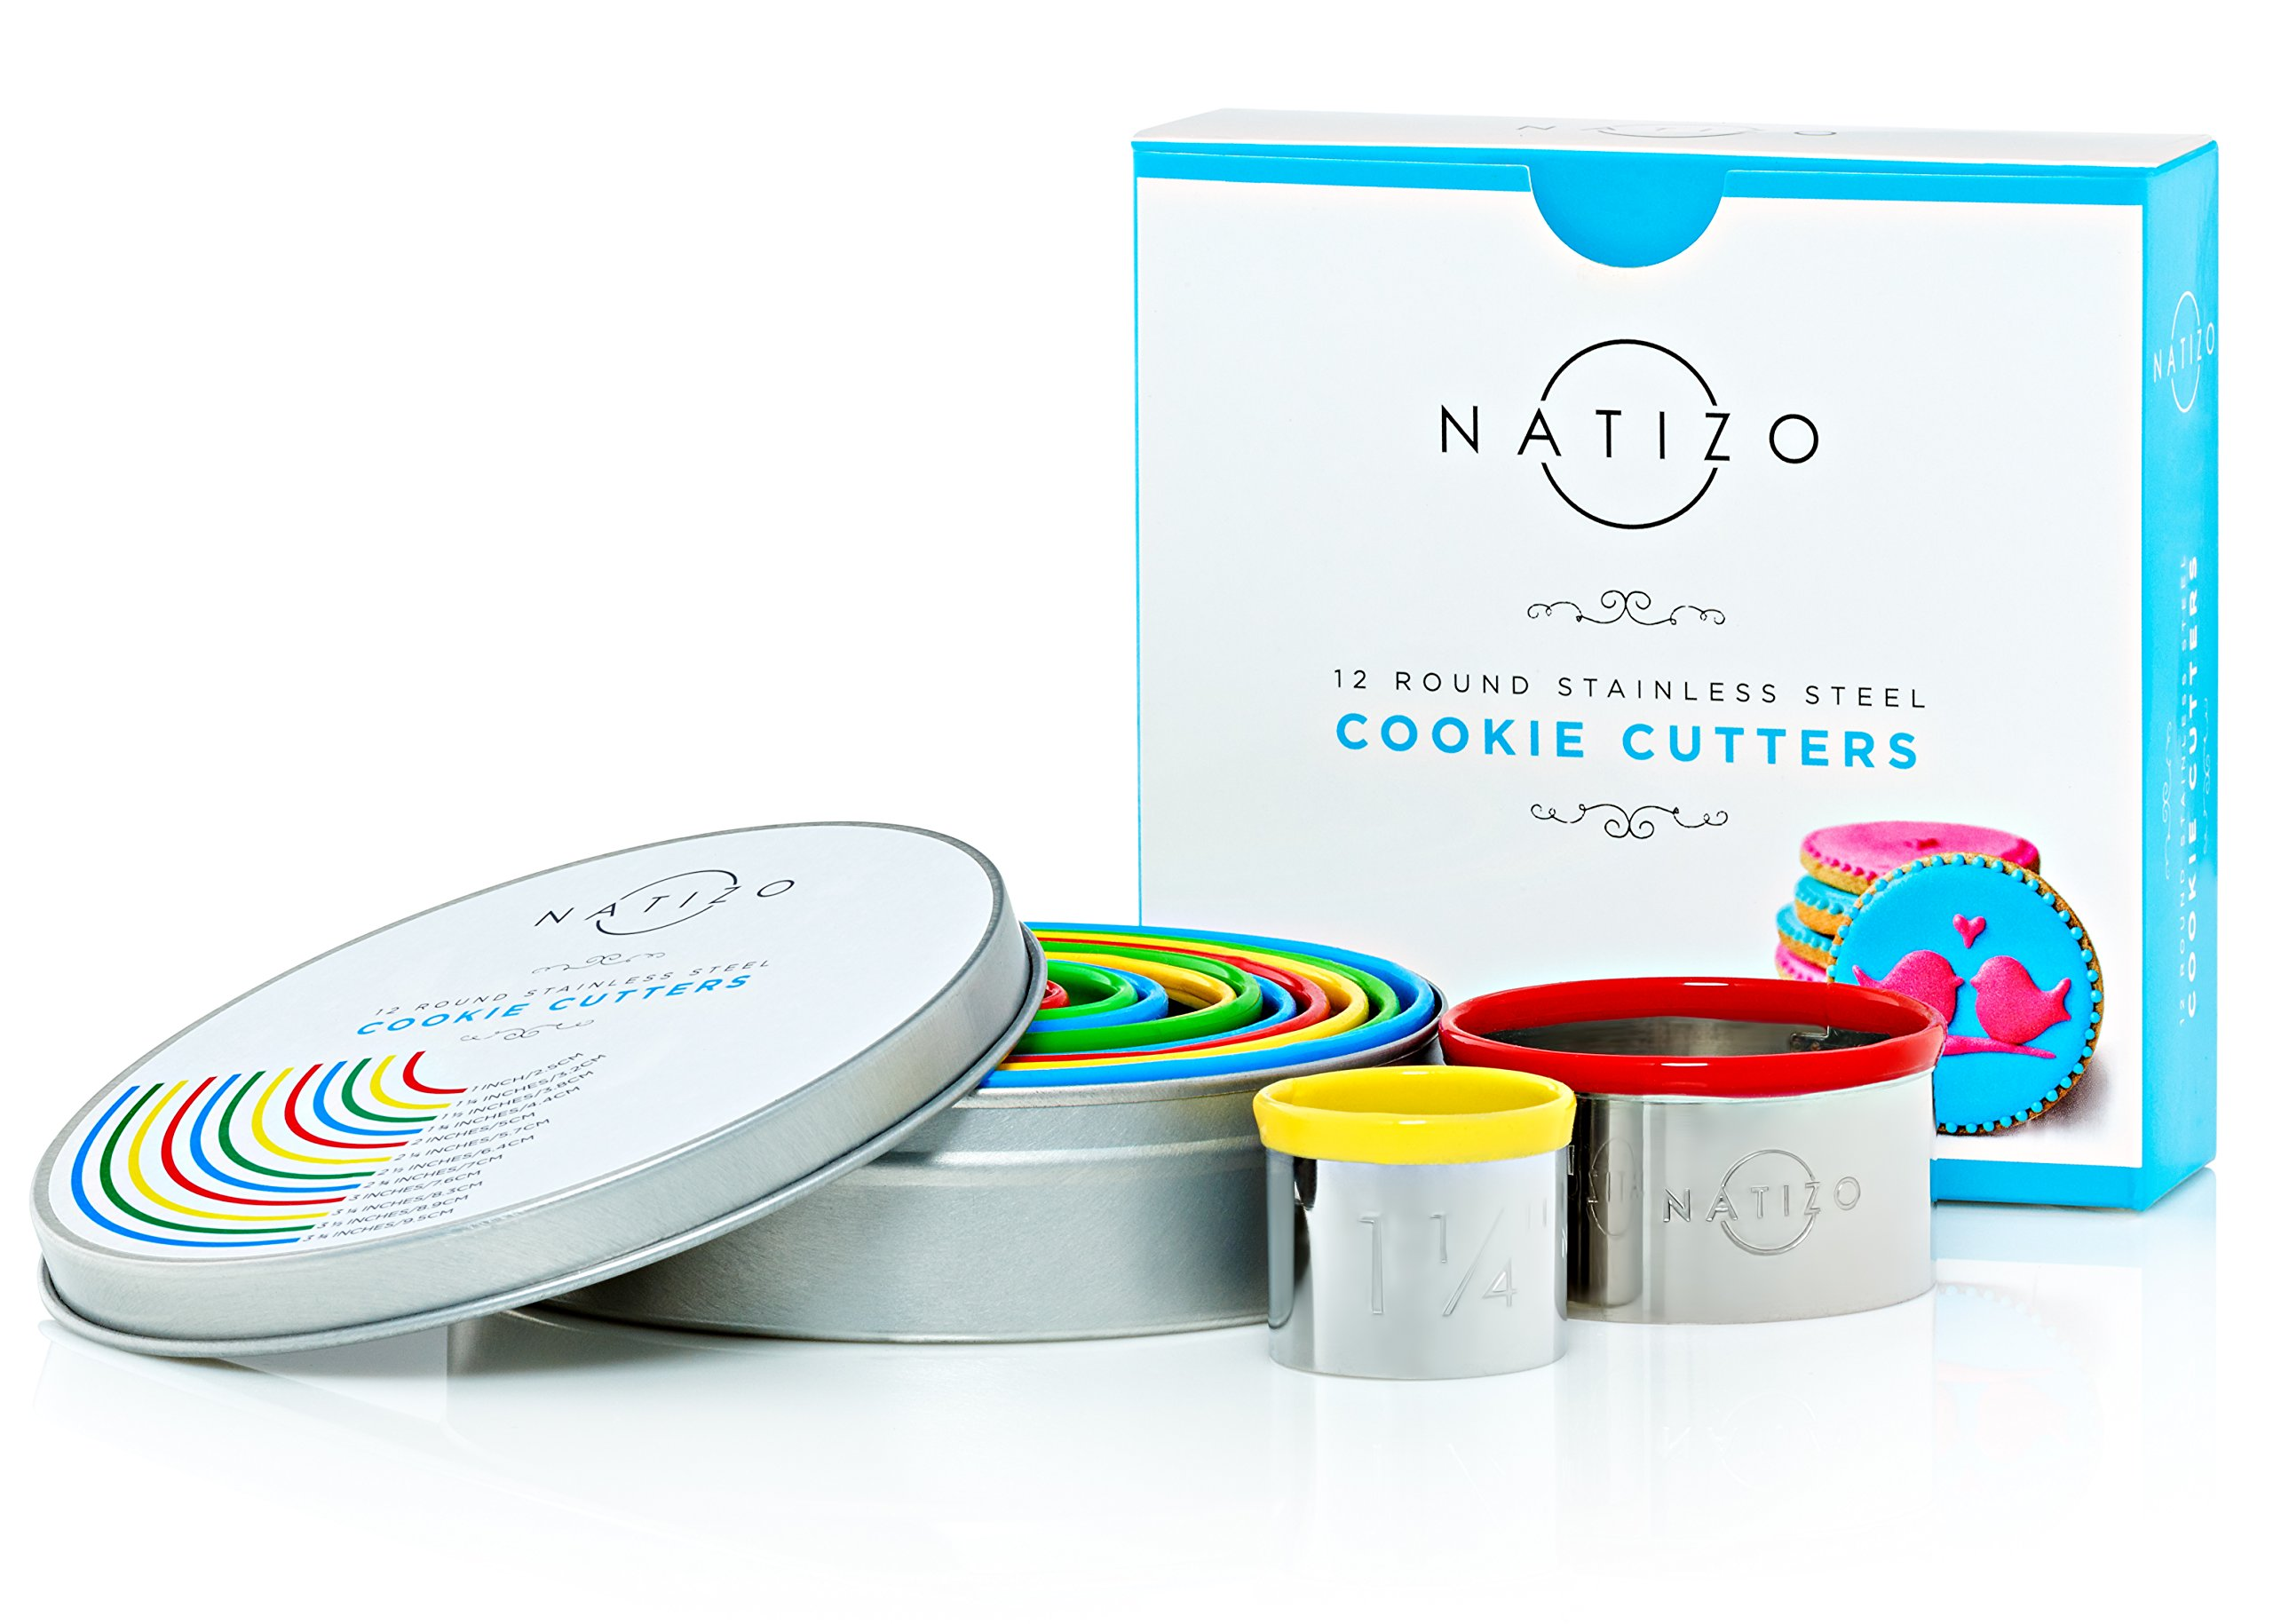 Natizo 12 Piece Round Stainless Steel Cookie Cutter Set - Size On Every Cutter - Silicone Tops by Natizo (Image #7)